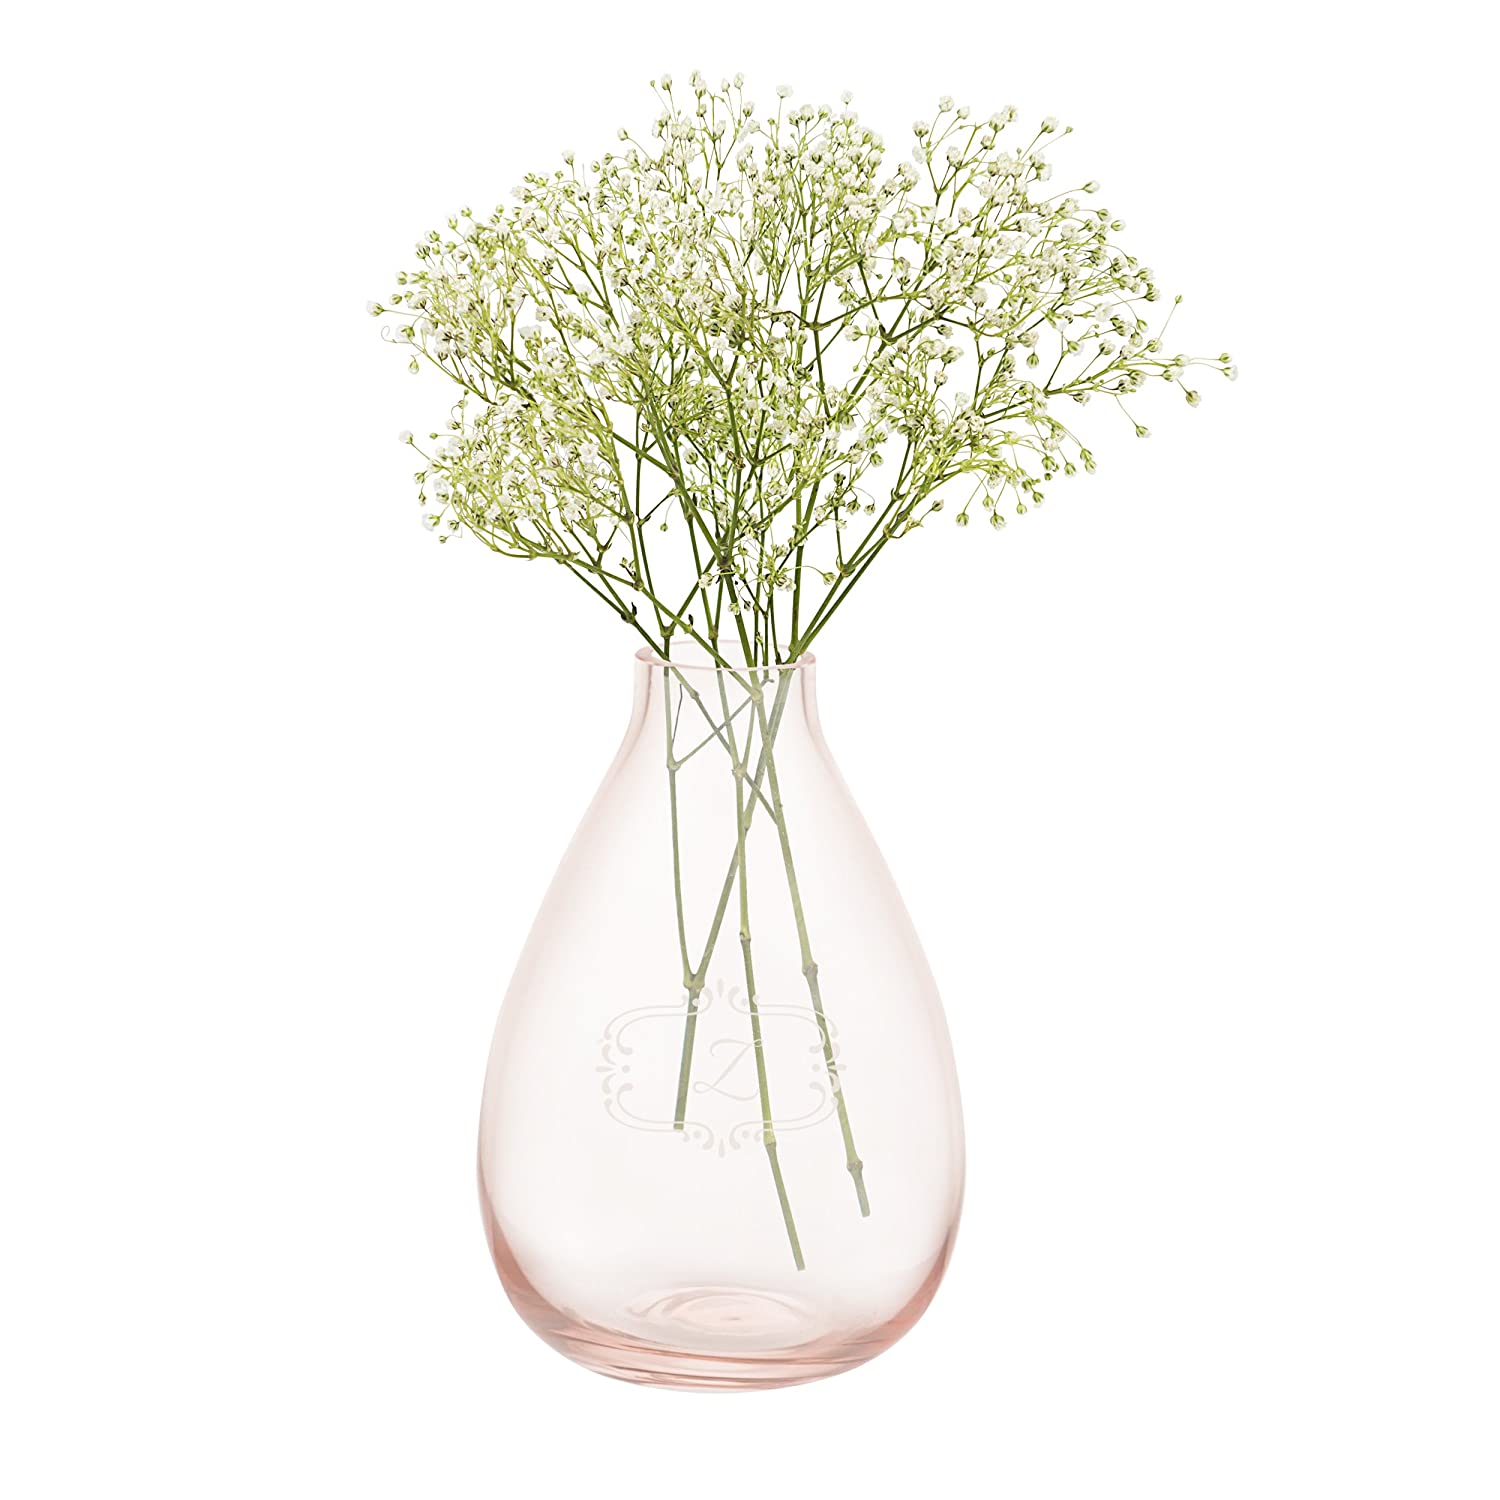 Clear Cathys Concepts Personalized Glass Vase